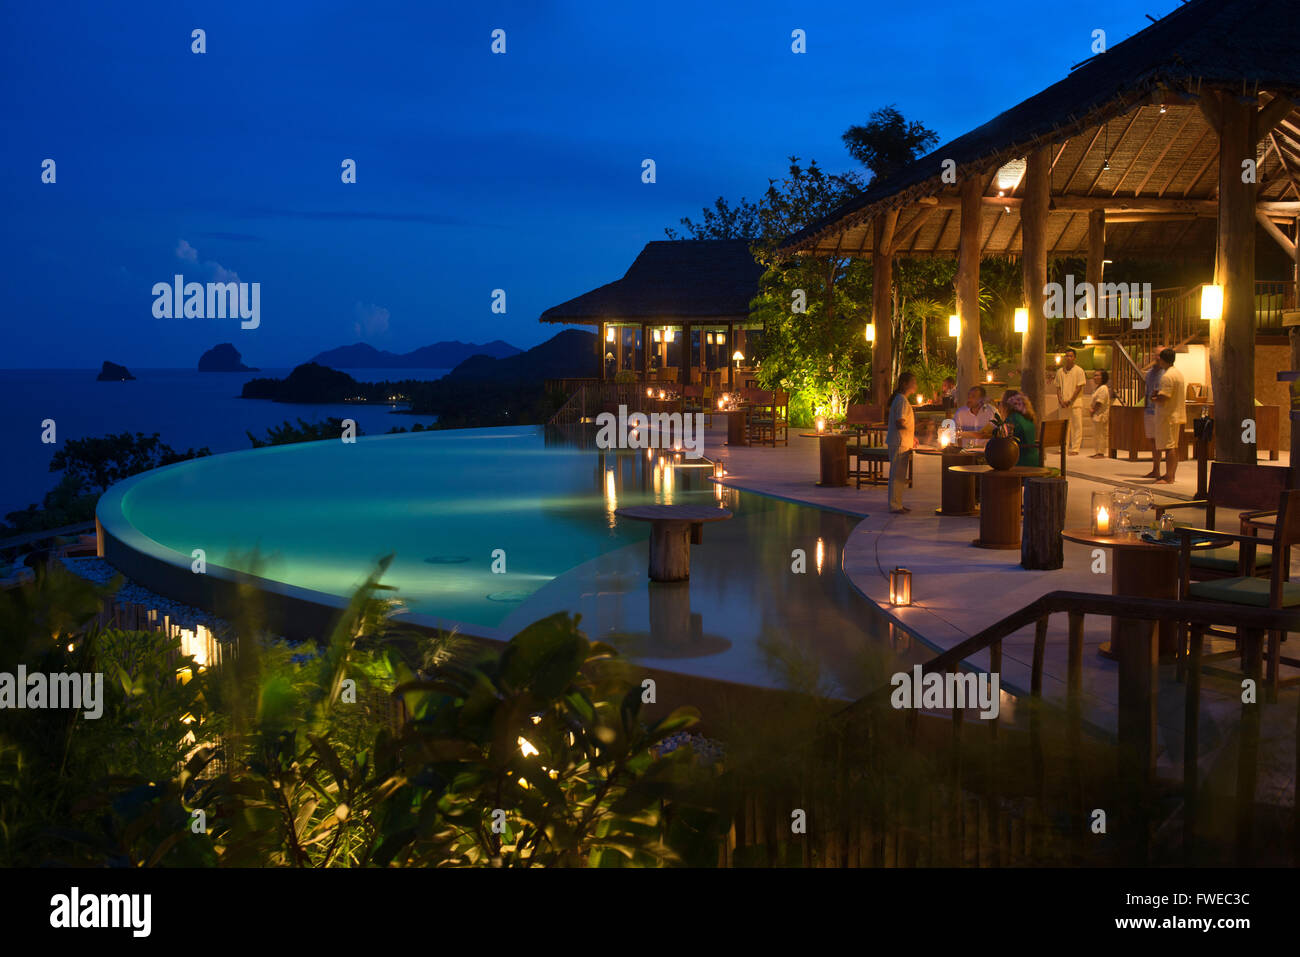 Six Senses Resort, Koh Yao Noi, Phang Nga Bay, Thailand, Asia. Restaurant near the swimming pool called The Hilltop - Stock Image